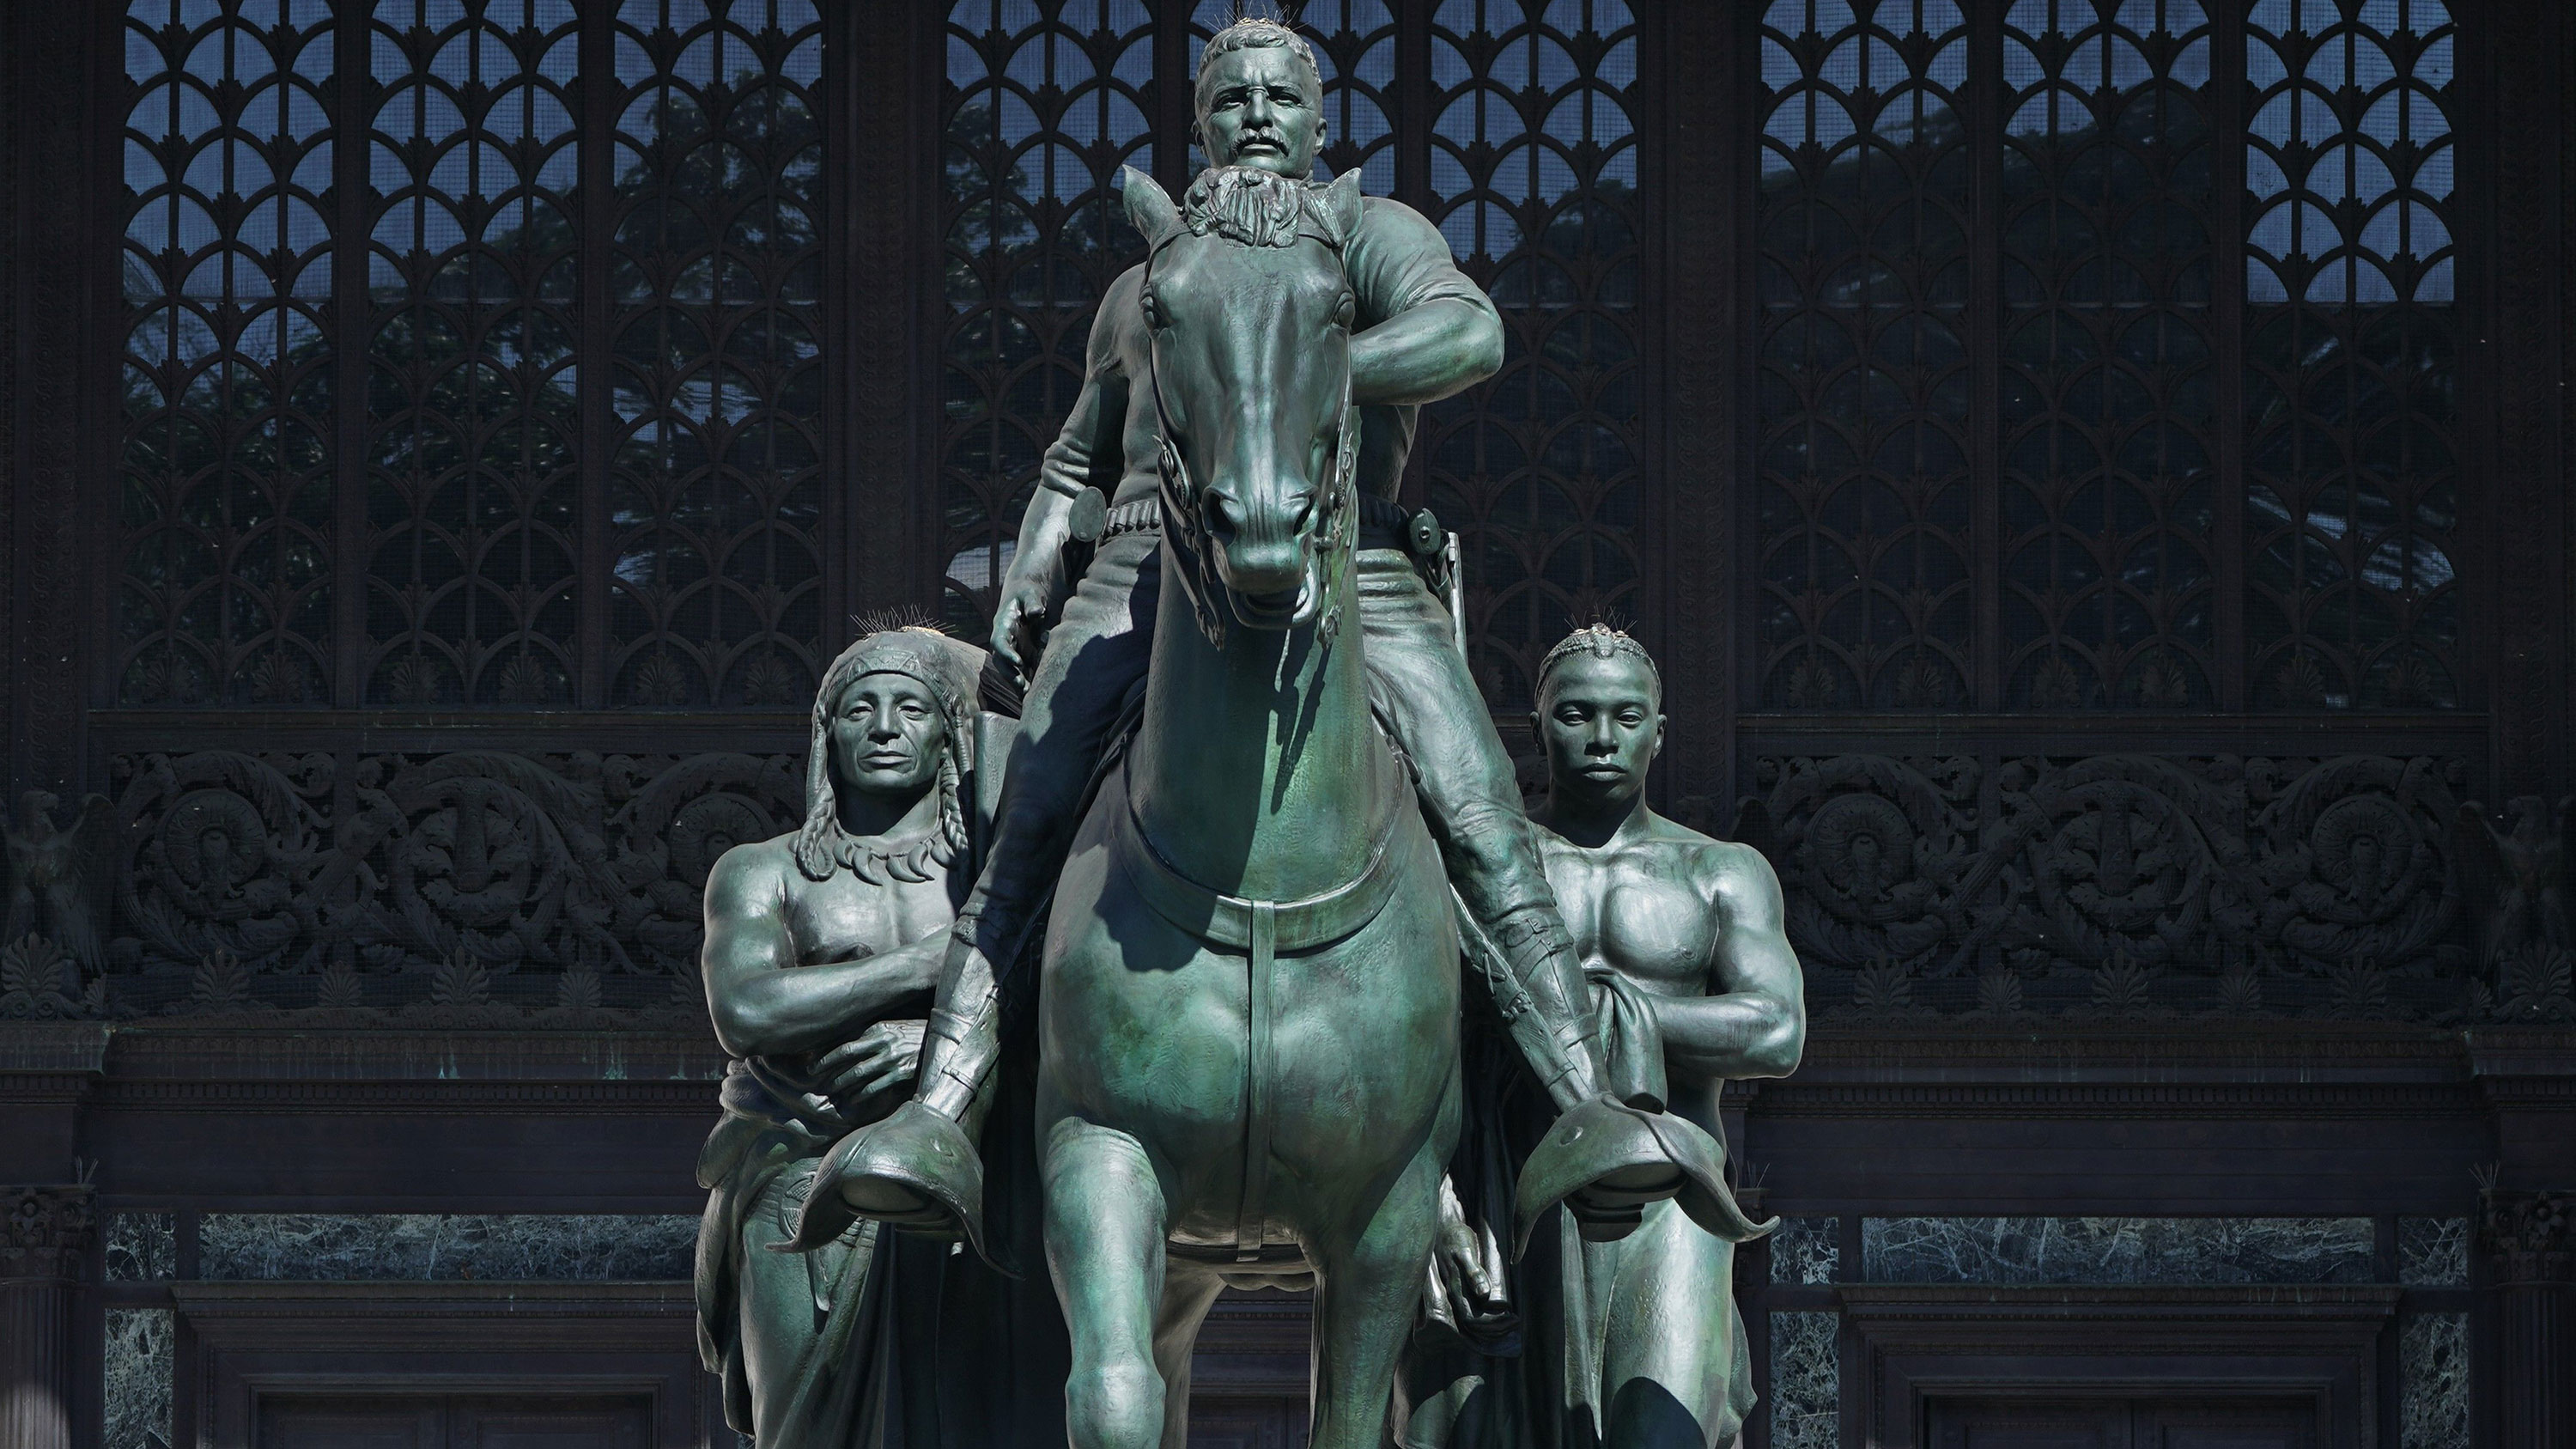 The Theodore Roosevelt statue in front of New York's Museum of Natural History will finally be removed